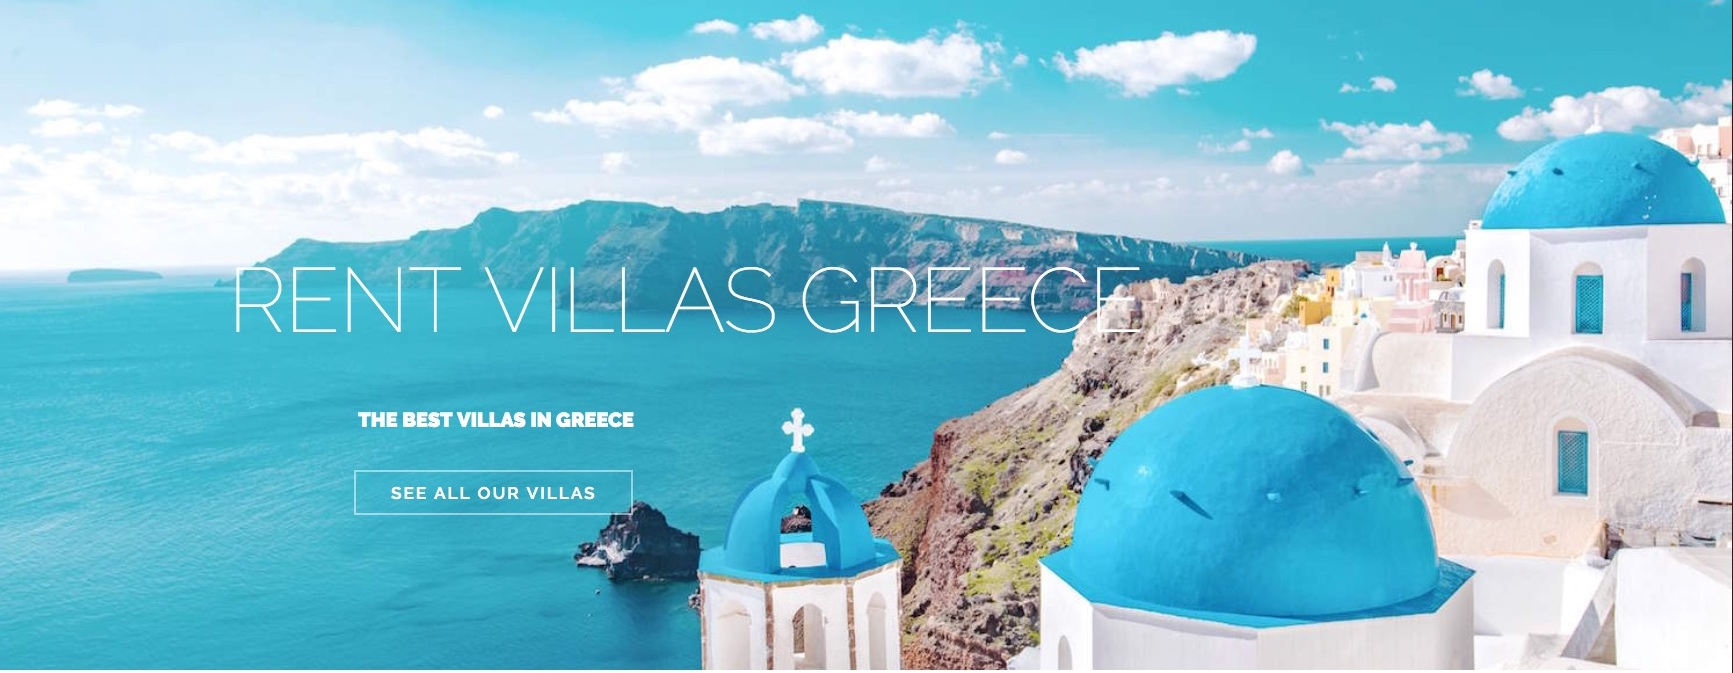 Rent Villas Greece, Holiday Villas Greece